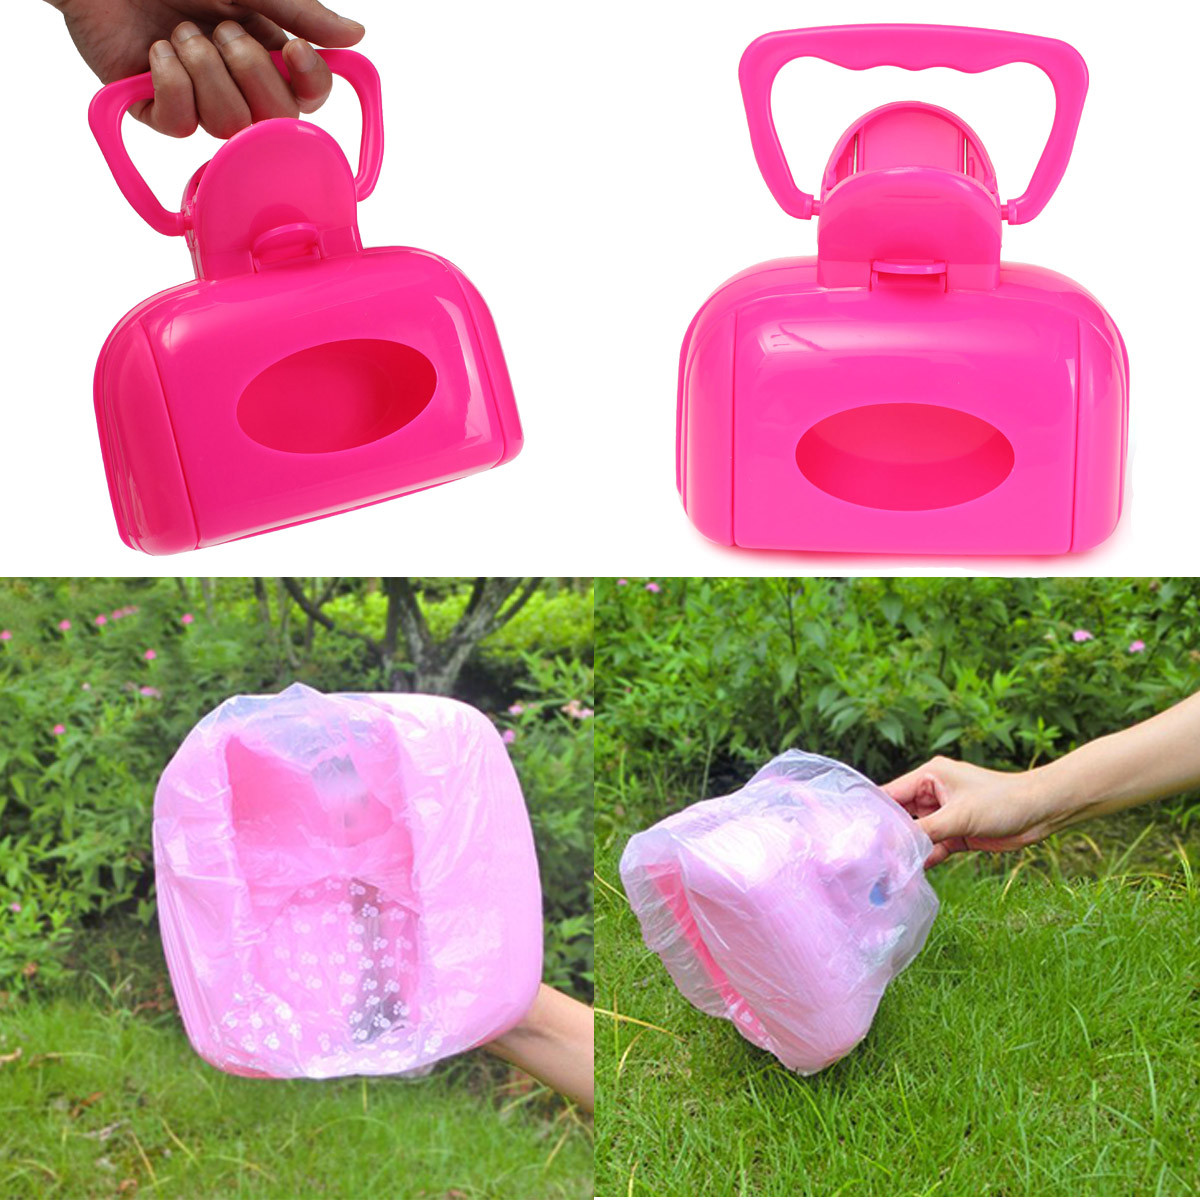 Portable Pet Dog Cat Waste Bag Case Pooper Scooper Poop Scoop Pickup Clip Easy Clean Tool